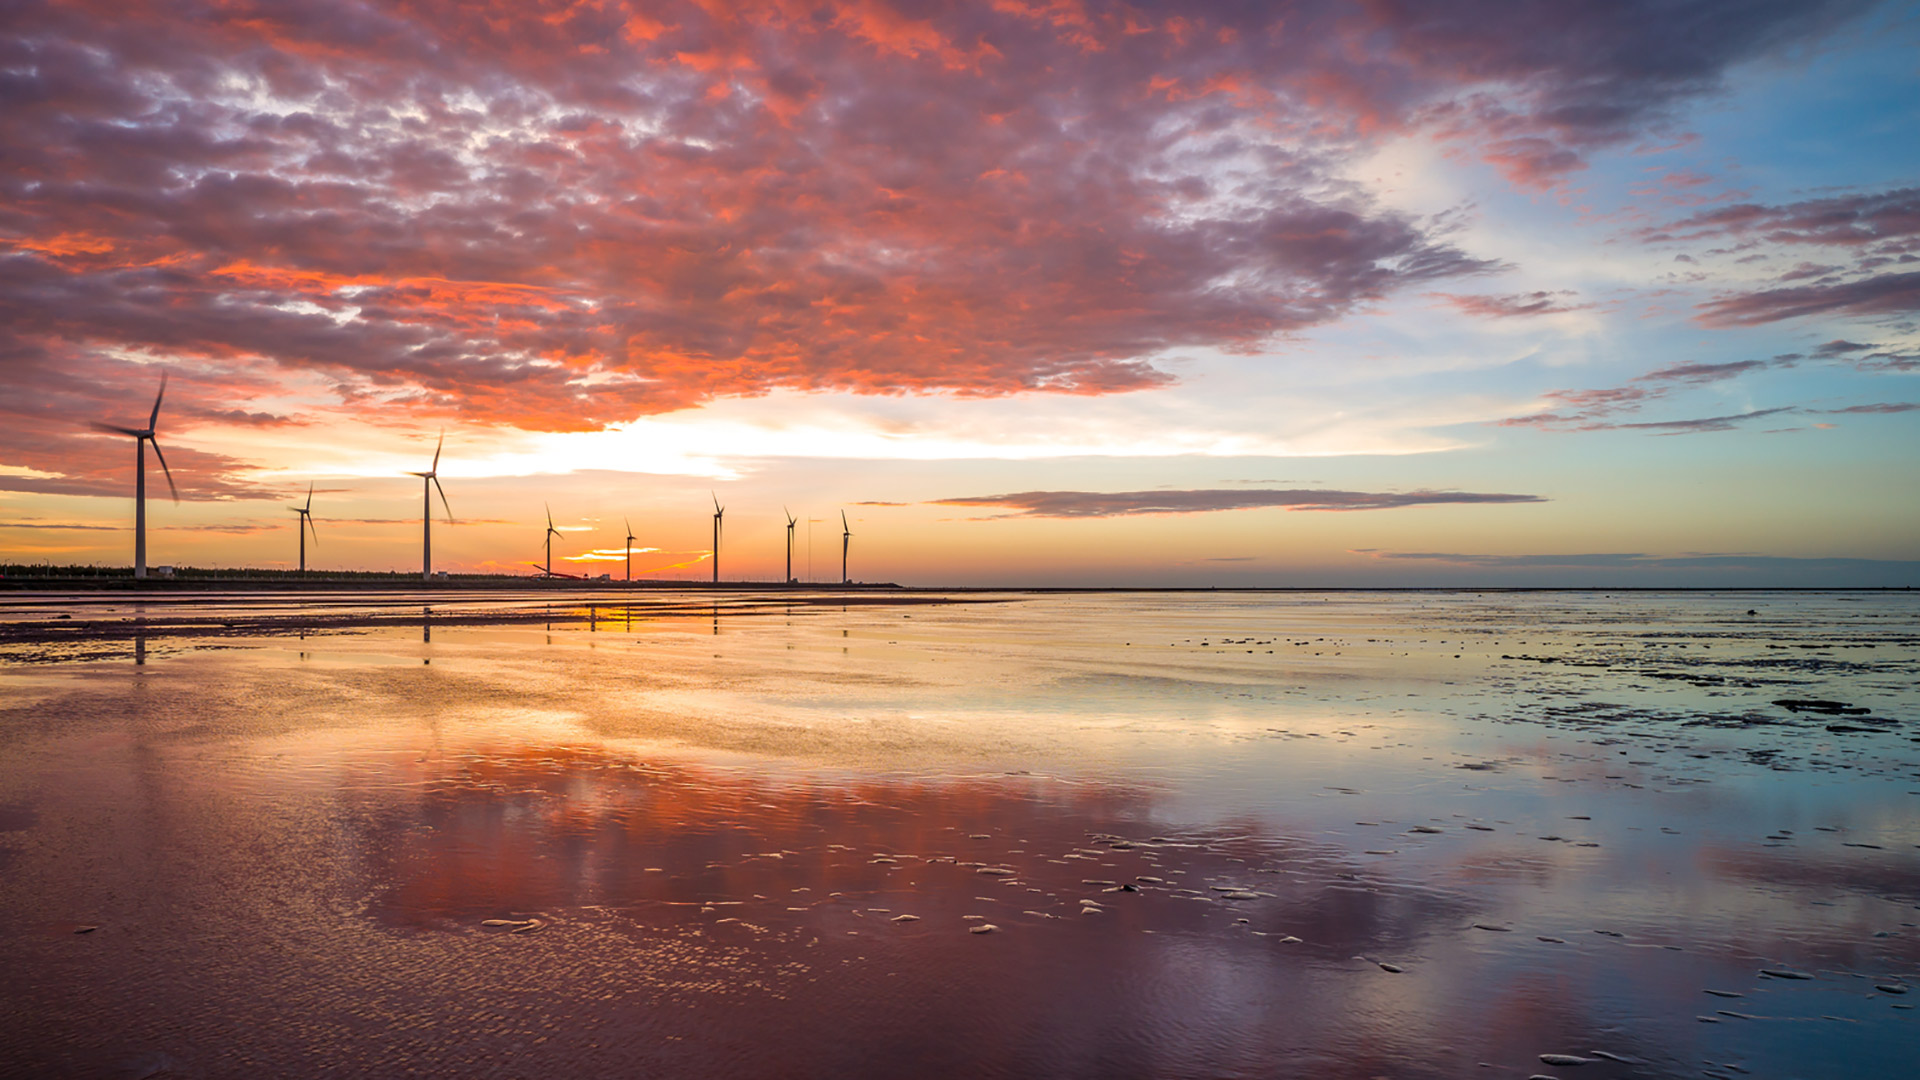 Wind turbines on beach